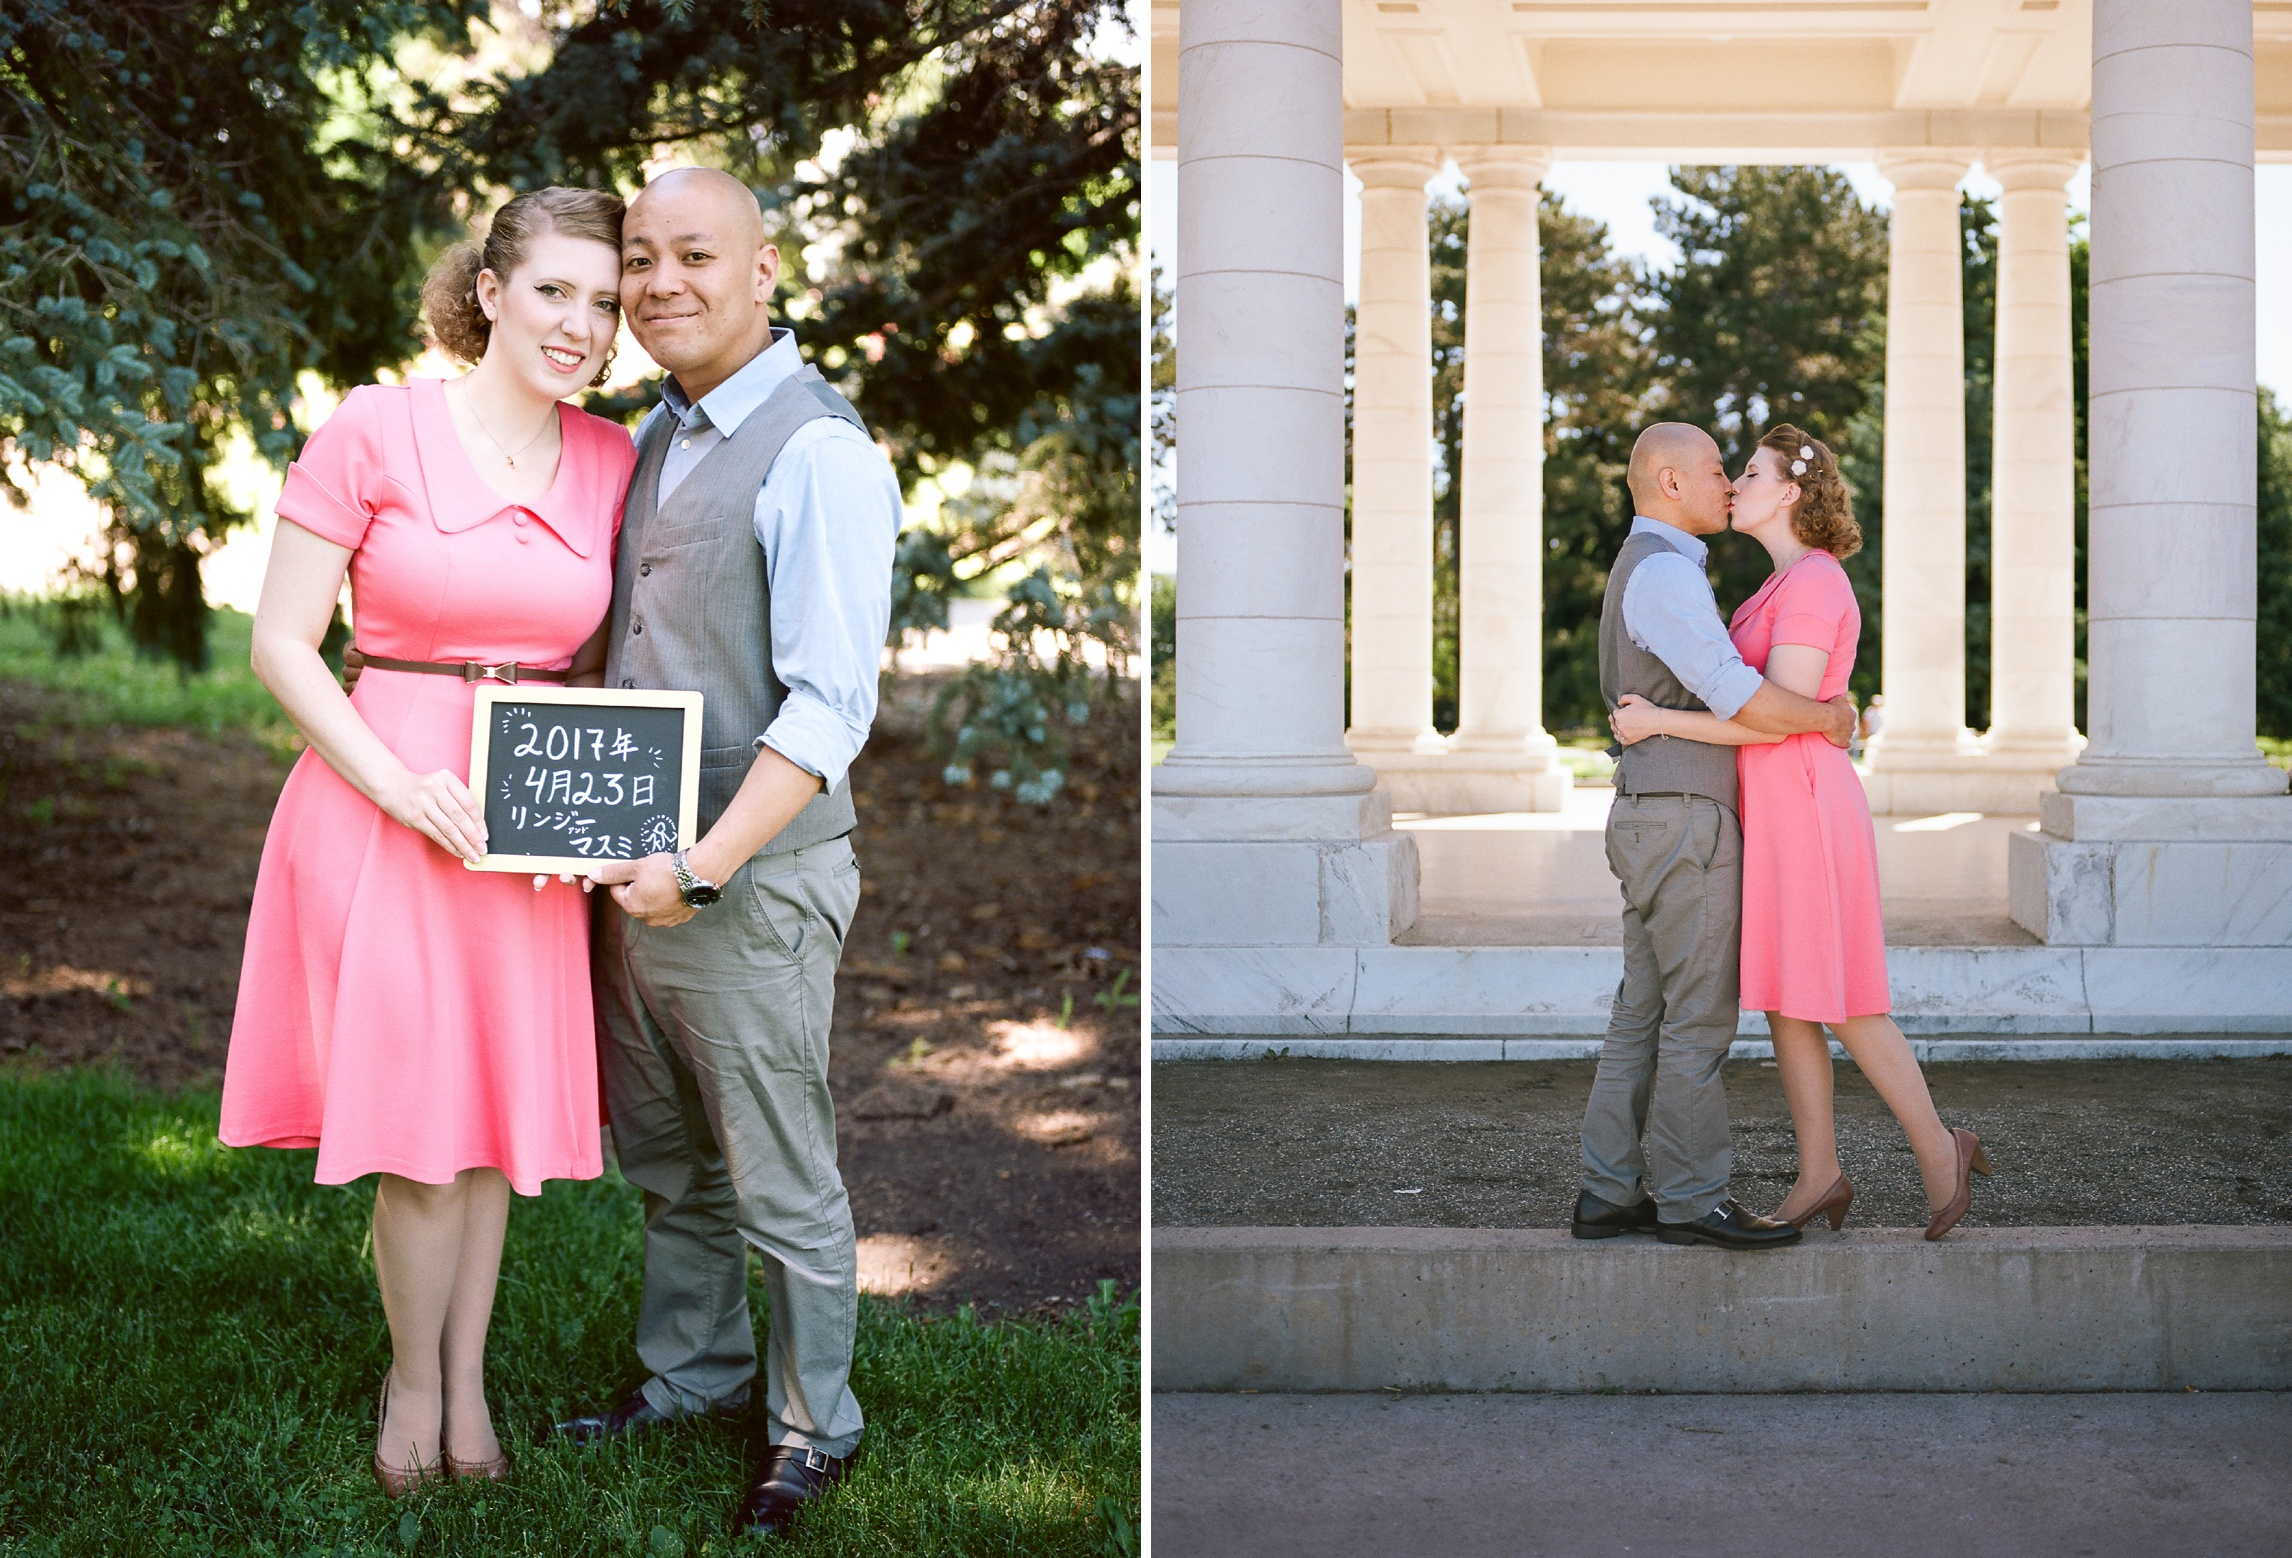 A cute engaged couple in Cheesman Park in Denver, Colorado. Engagement photography by Sonja Salzburg of Sonja K Photography.